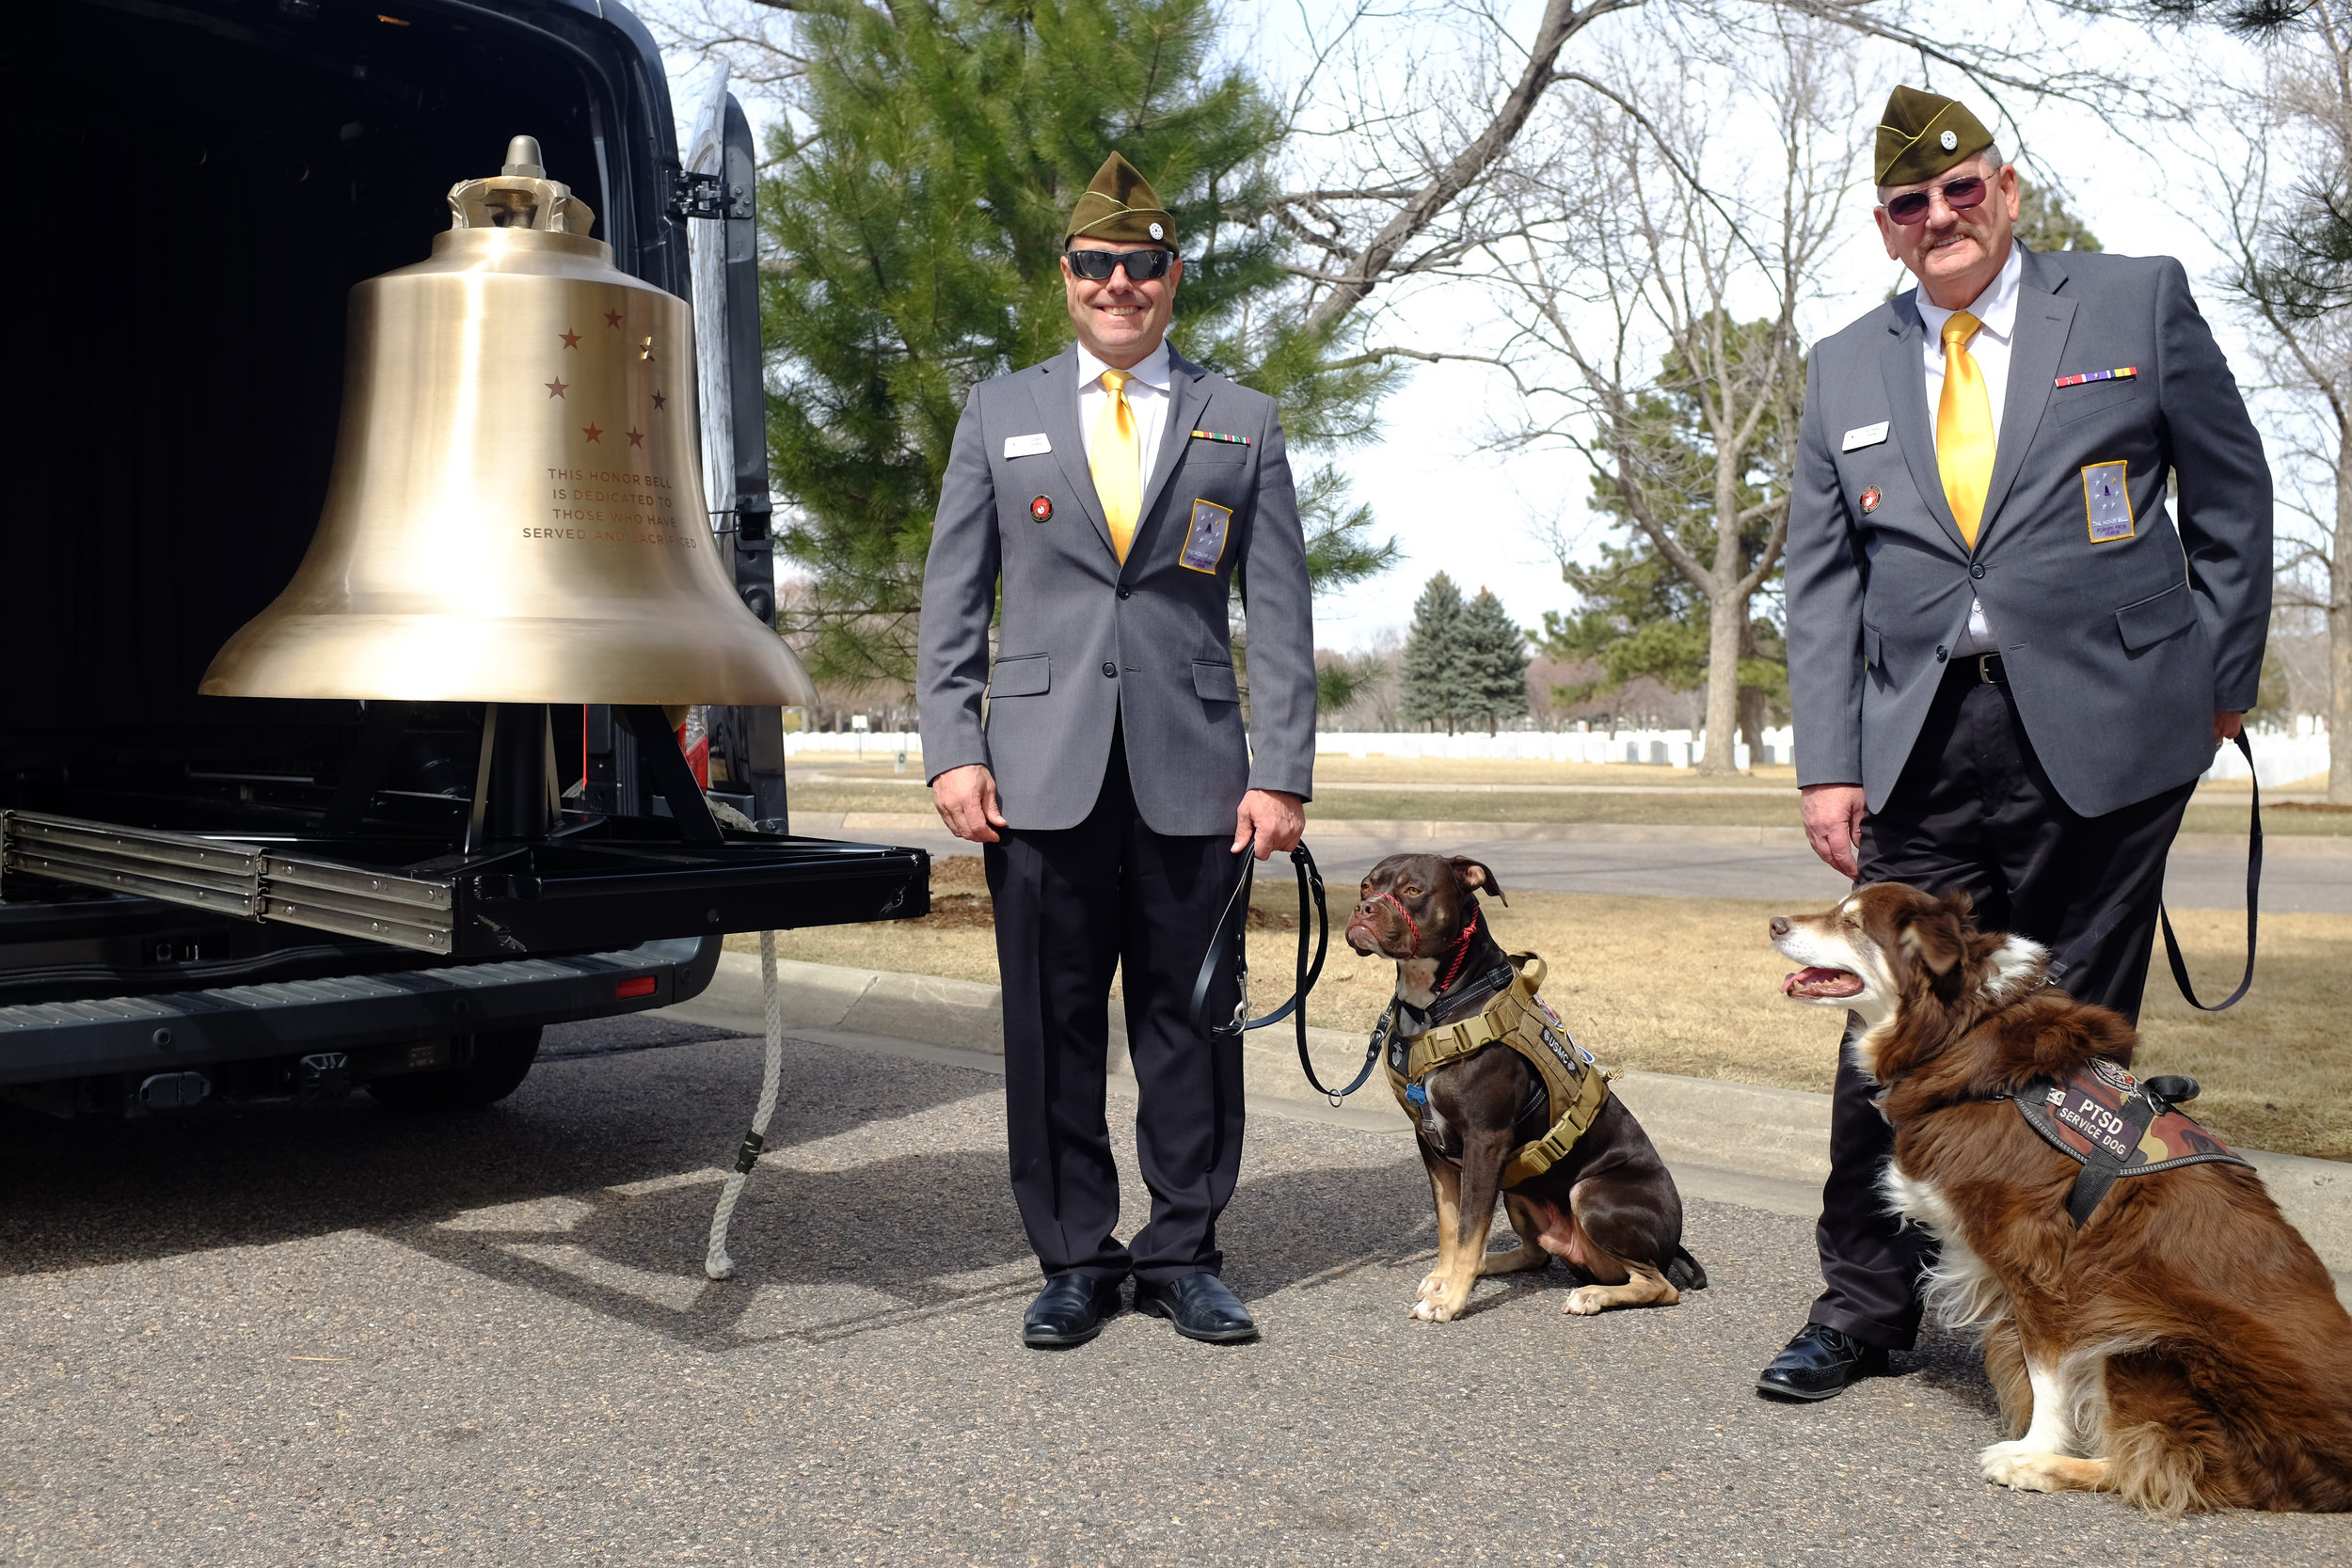 Chris Boyer with Noodle, and Ric Payne with Jack, on a recent afternoon at Fort Logan National Cemetery with the Honor Bell.